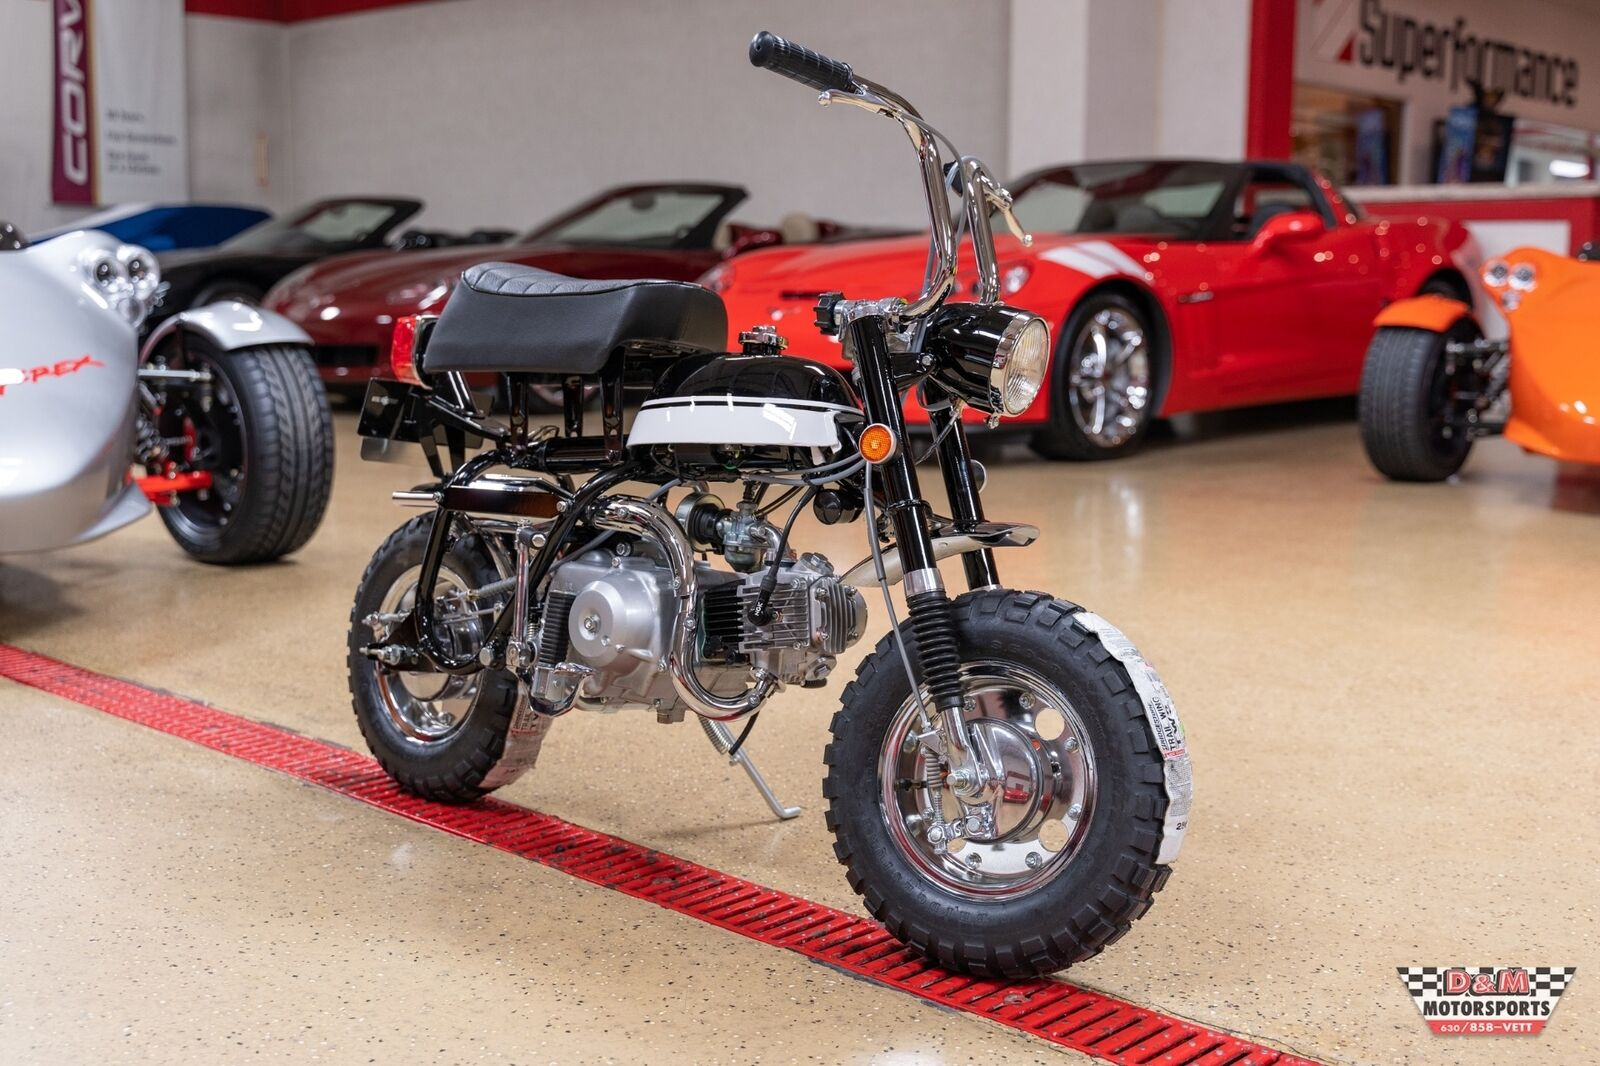 Picture of A 1970 Honda Z50